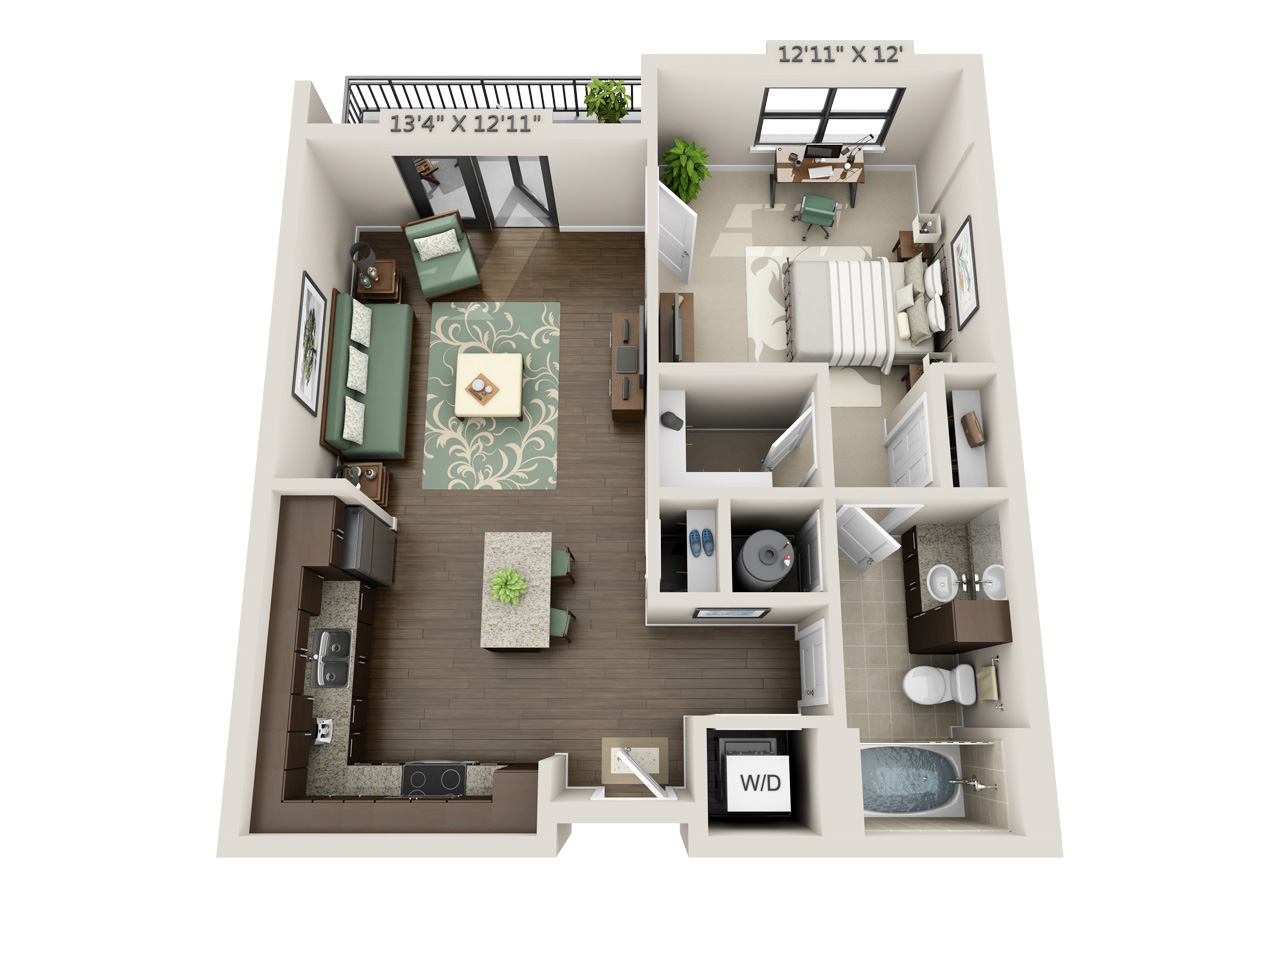 Tremendous Apartments And Pricing For Savoye Dallas Beutiful Home Inspiration Xortanetmahrainfo